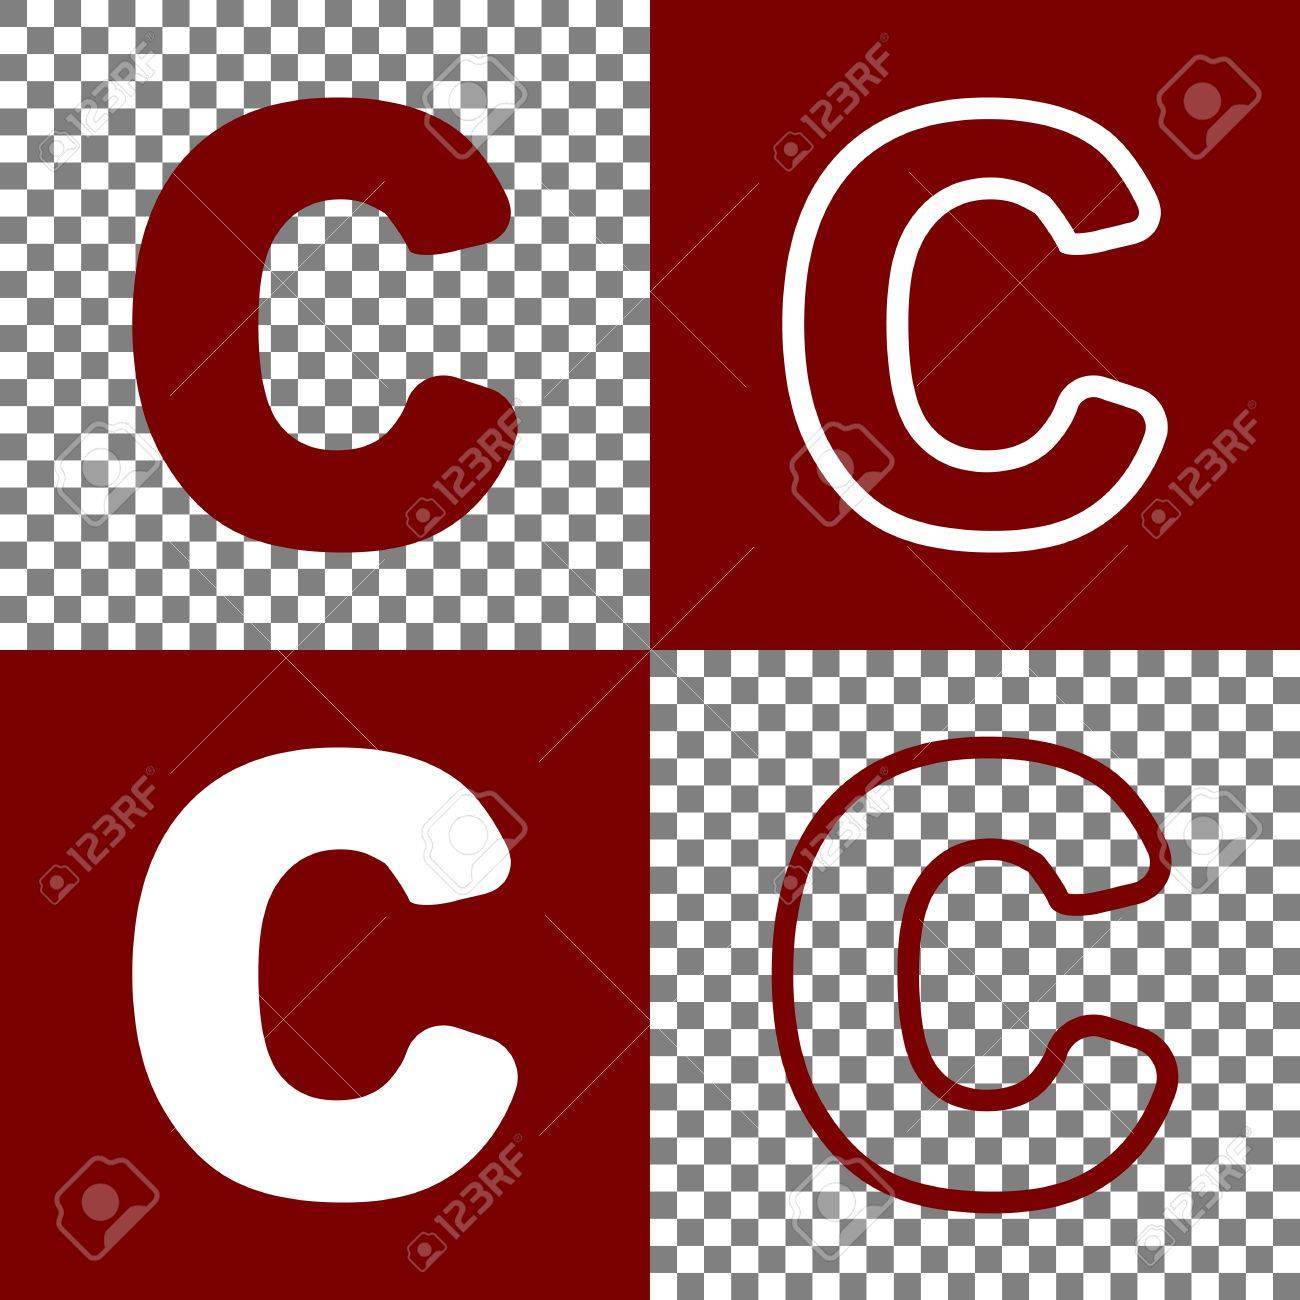 letter c sign design template element vector bordo and white